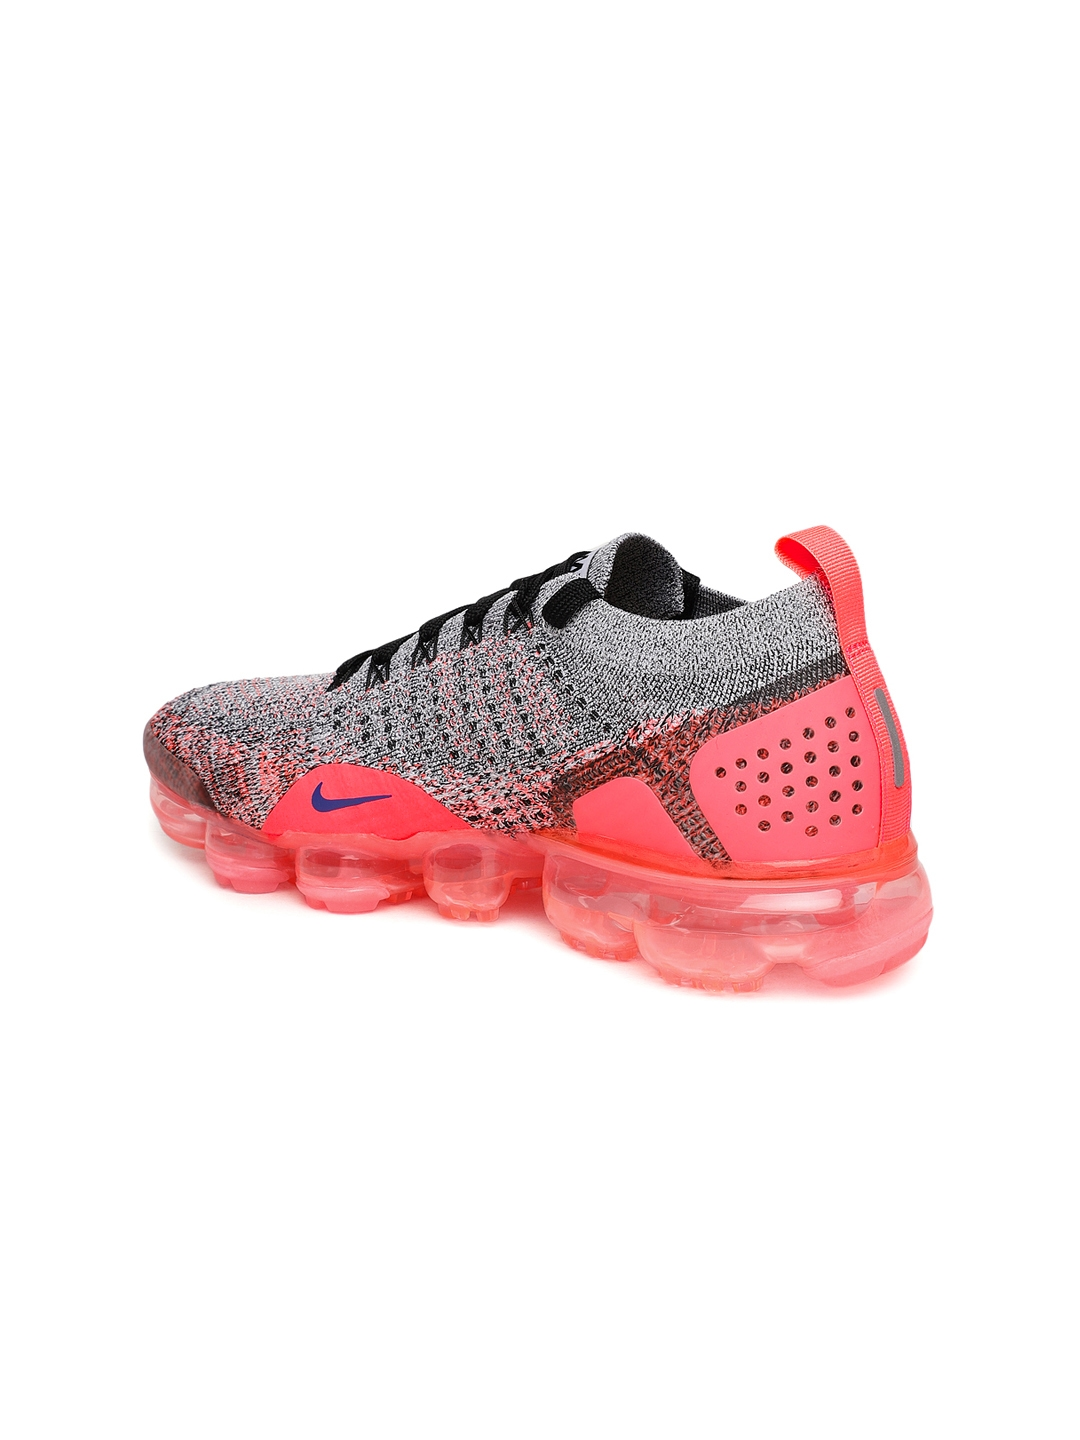 8b9e46c4f36c0 Buy Nike Women White   Black AIR VAPORMAX FLYKNIT 2 Running Shoes ...